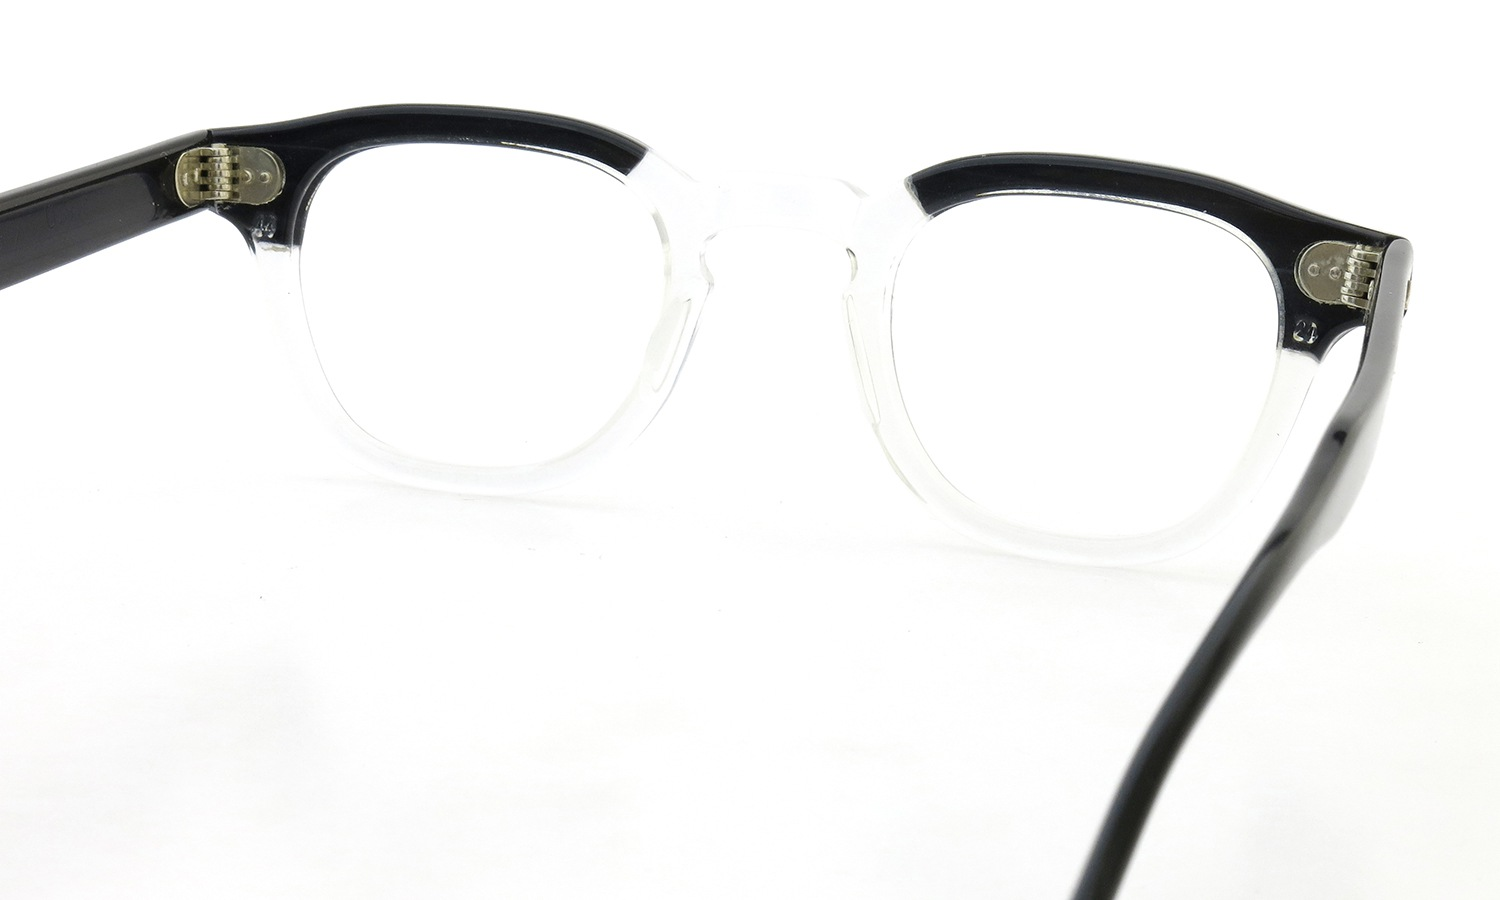 ART Optical vintage メガネ ARNEL BLACKWOOD C. 44-24